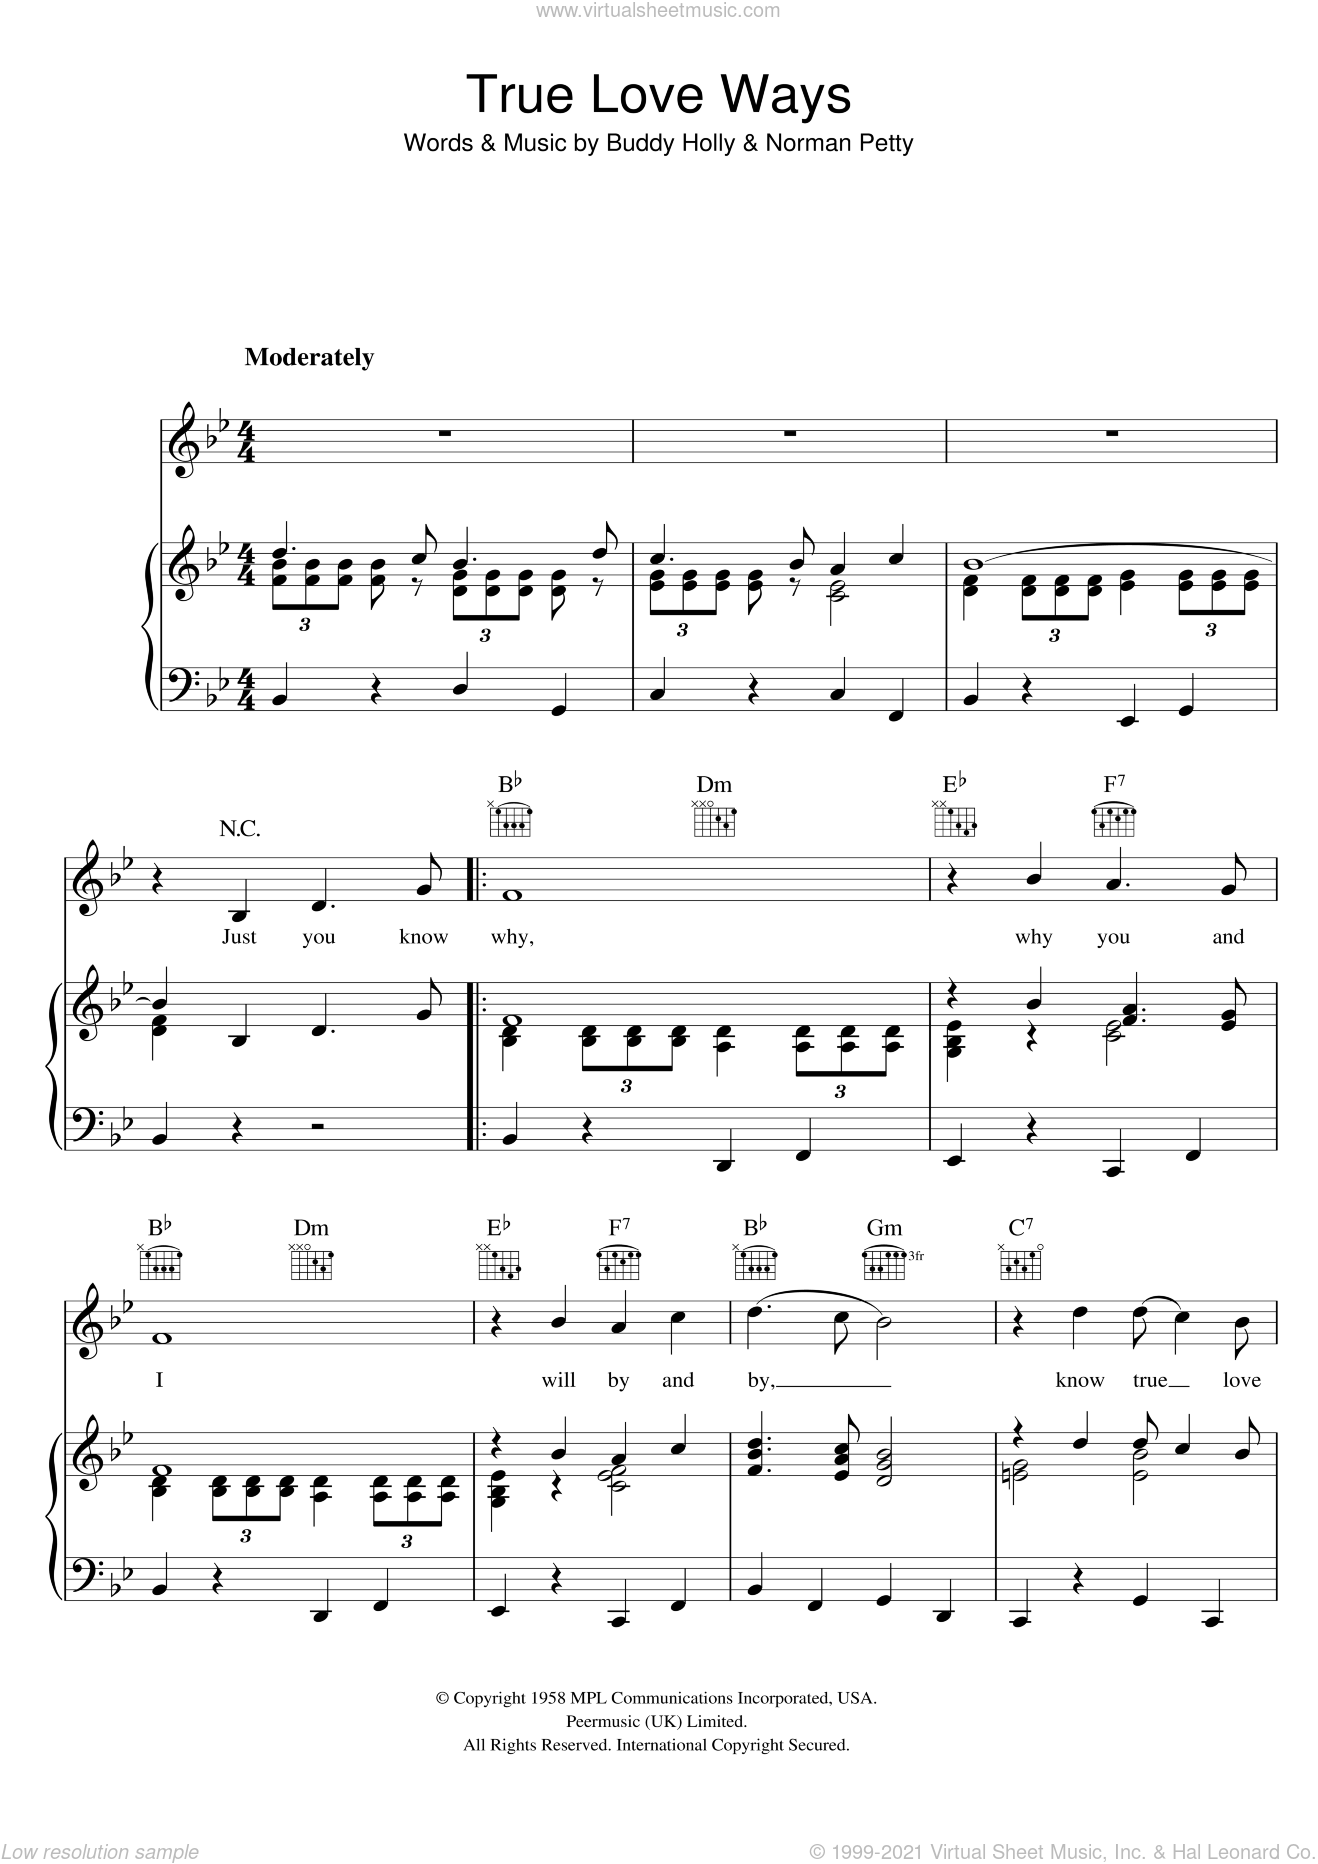 True Love Ways sheet music for voice, piano or guitar by Buddy Holly and Norman Petty, intermediate skill level